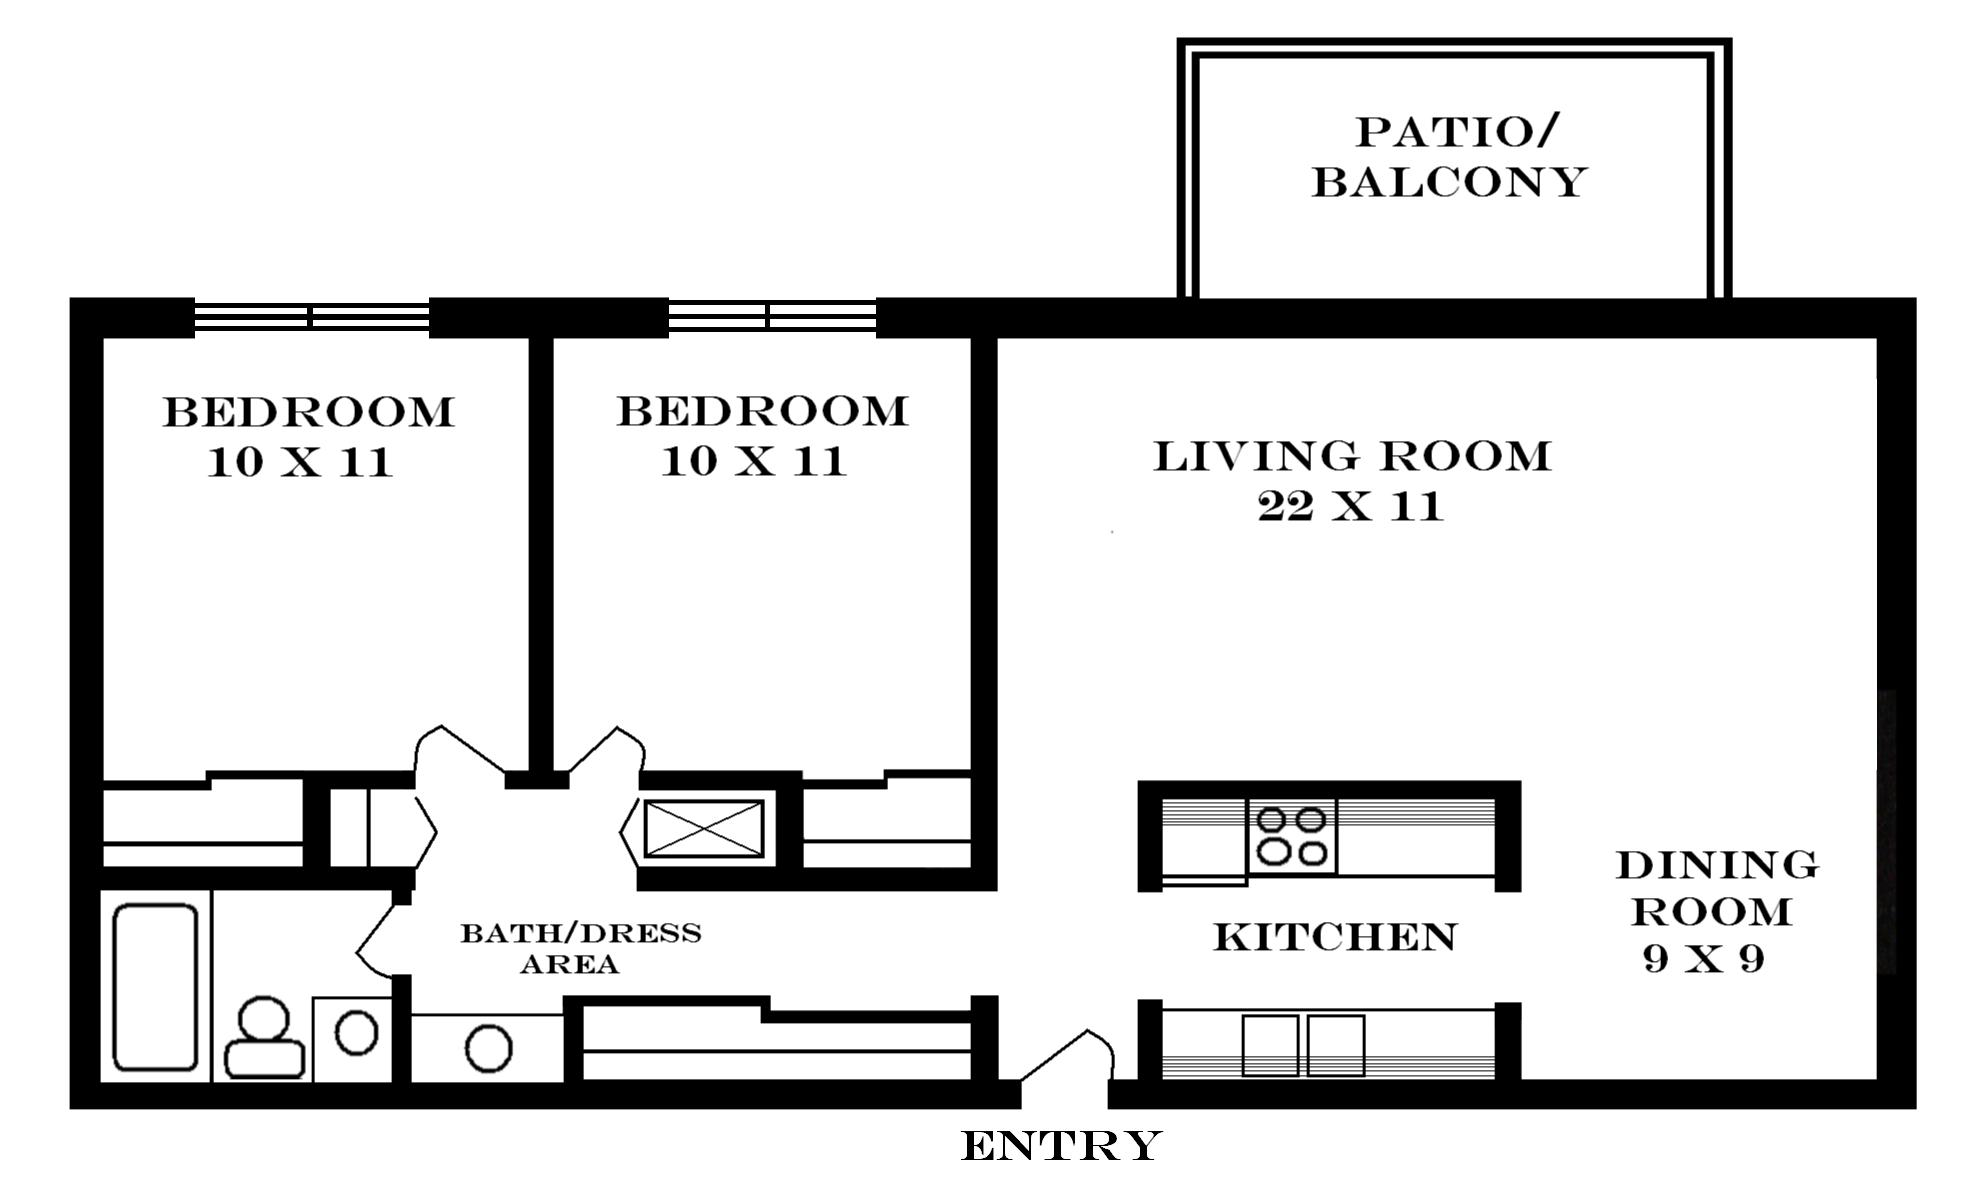 Lawrence apartments meadowbrook 2601 dover square for 2 bedroom 1 bath house floor plans